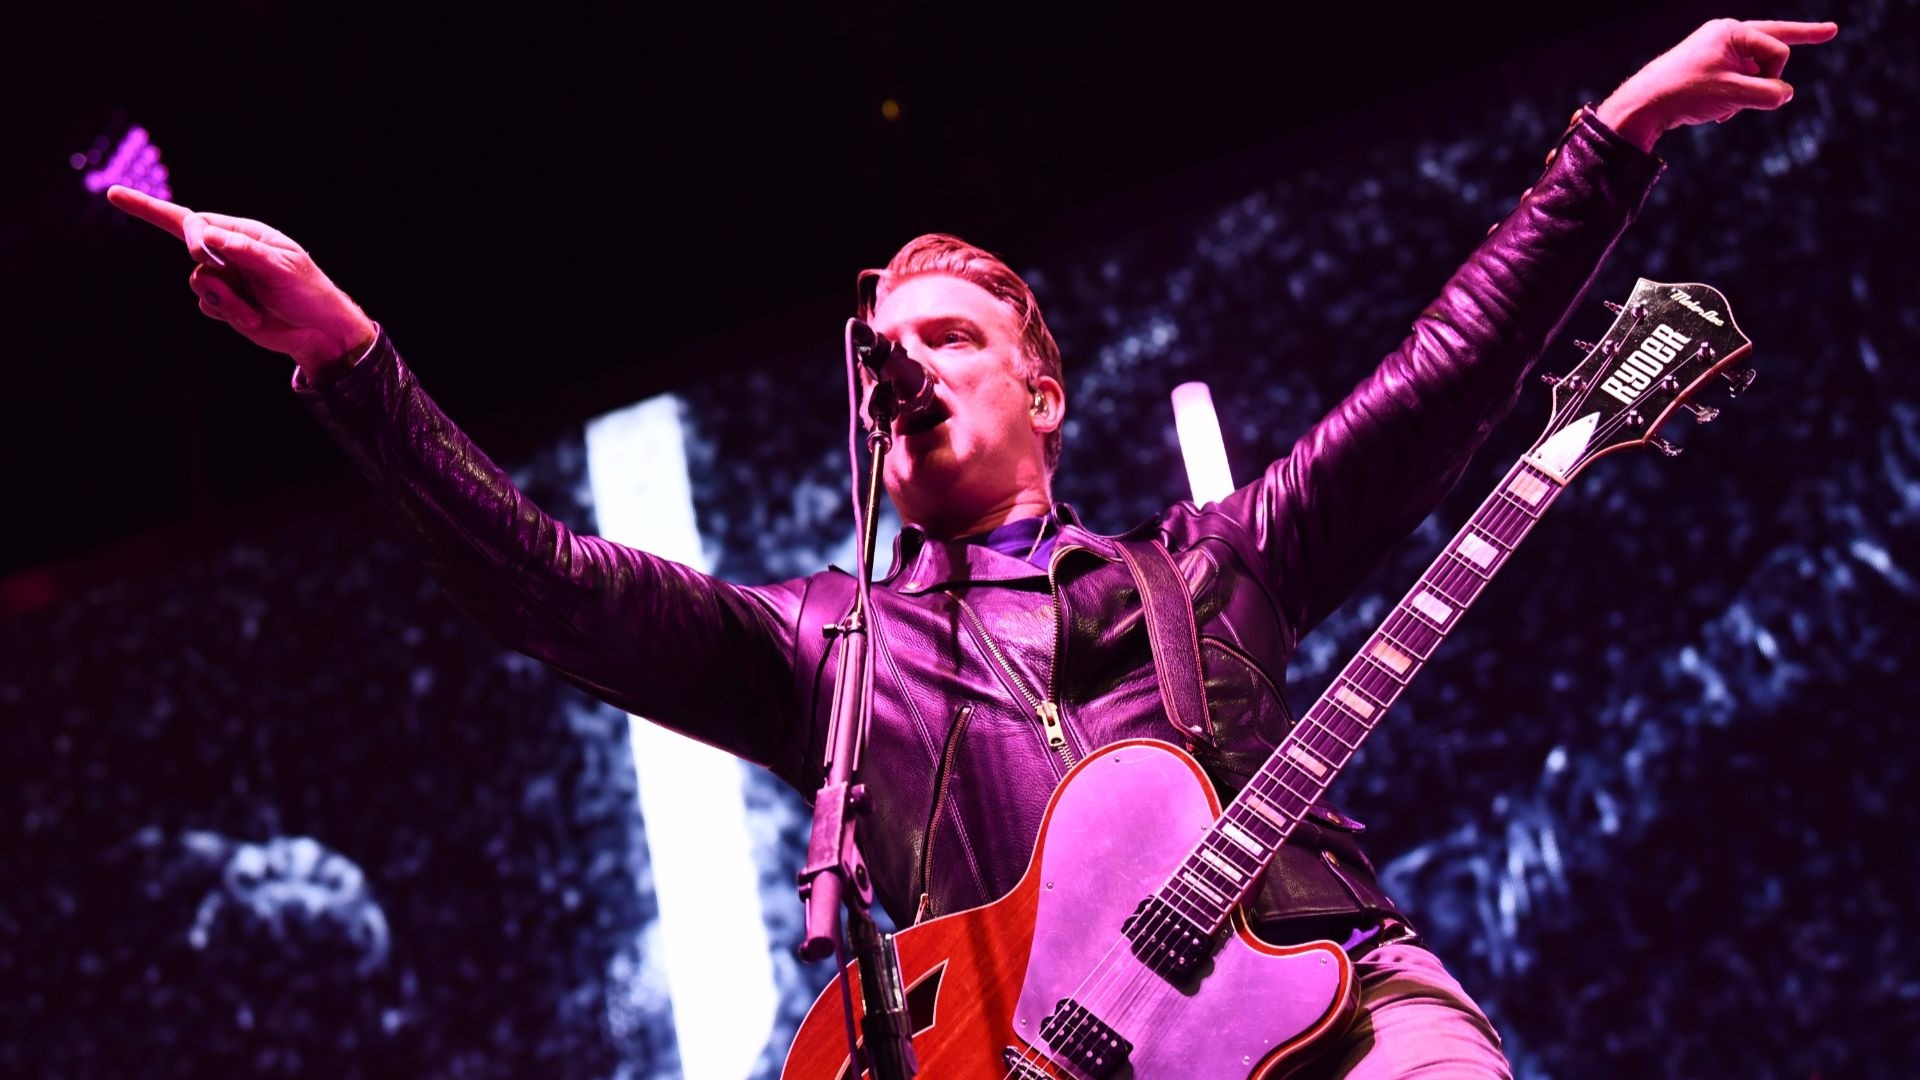 Josh Homme from Queens of the Stone Age.